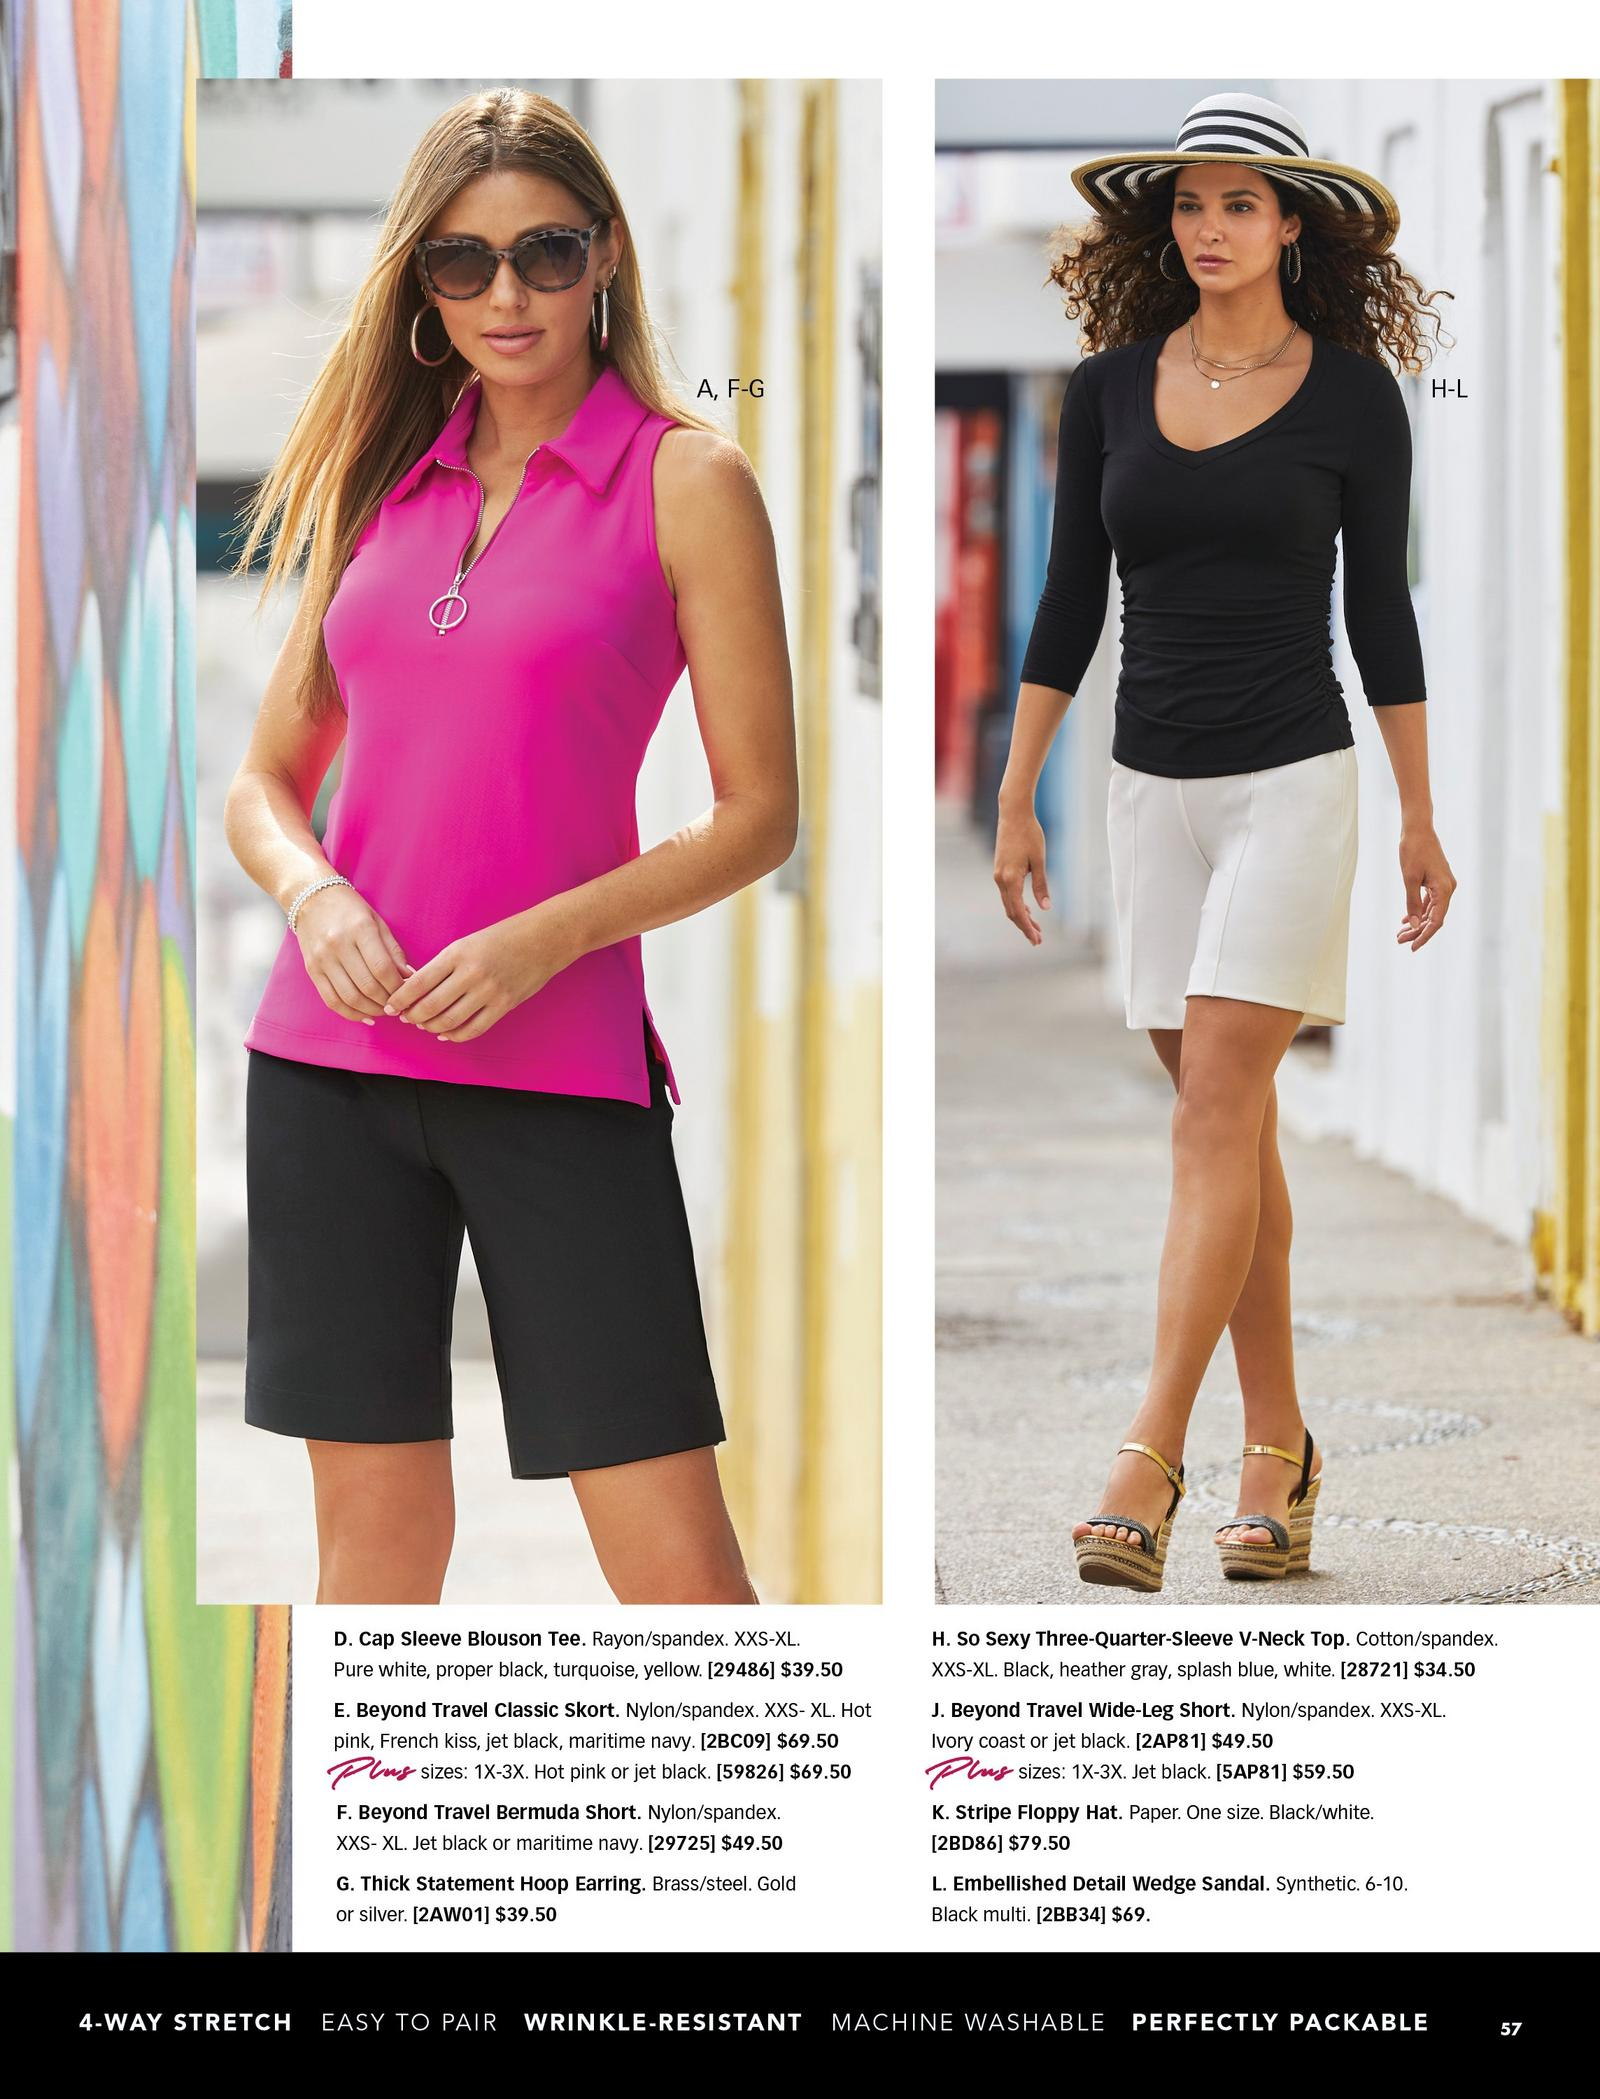 left model wearing a hot pink sleeveless collared top, black bermuda shorts, and sunglasses. right model wearing a black three-quarter sleeve top, khaki wide-leg shorts, embellished wedges, and a striped floppy hat.